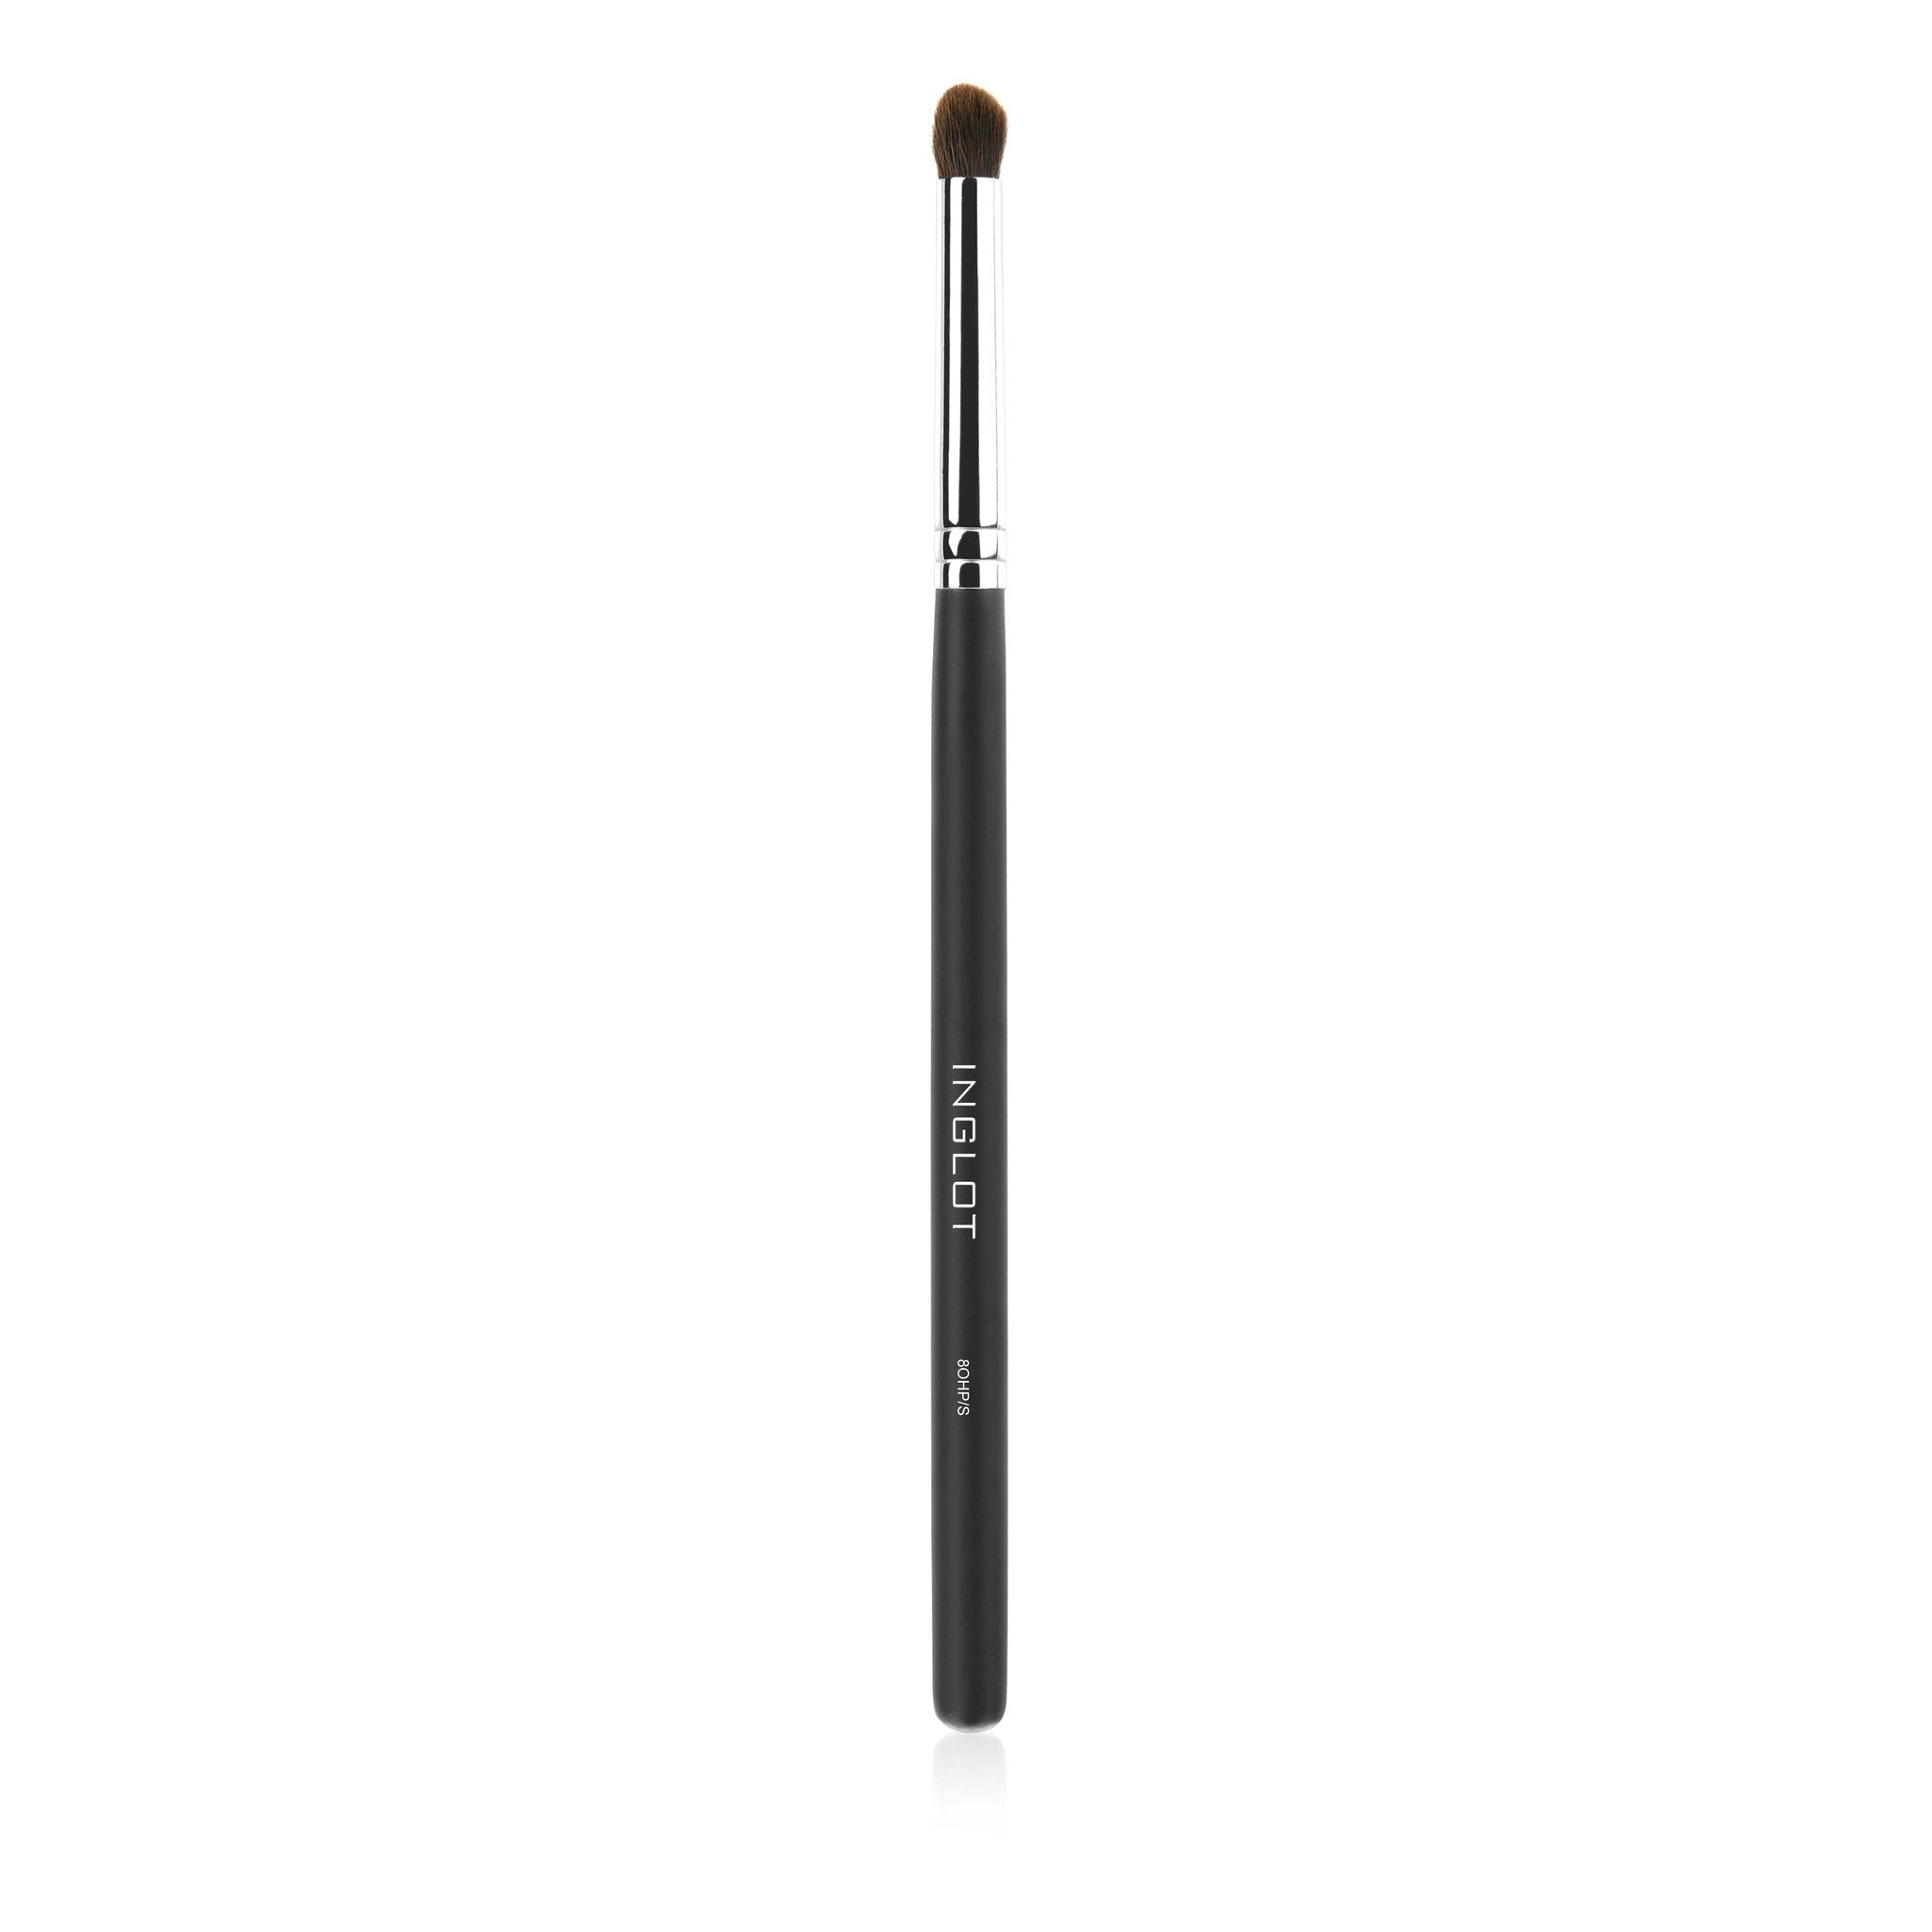 INGLOT - BRUSH 80HP/S -  - 2